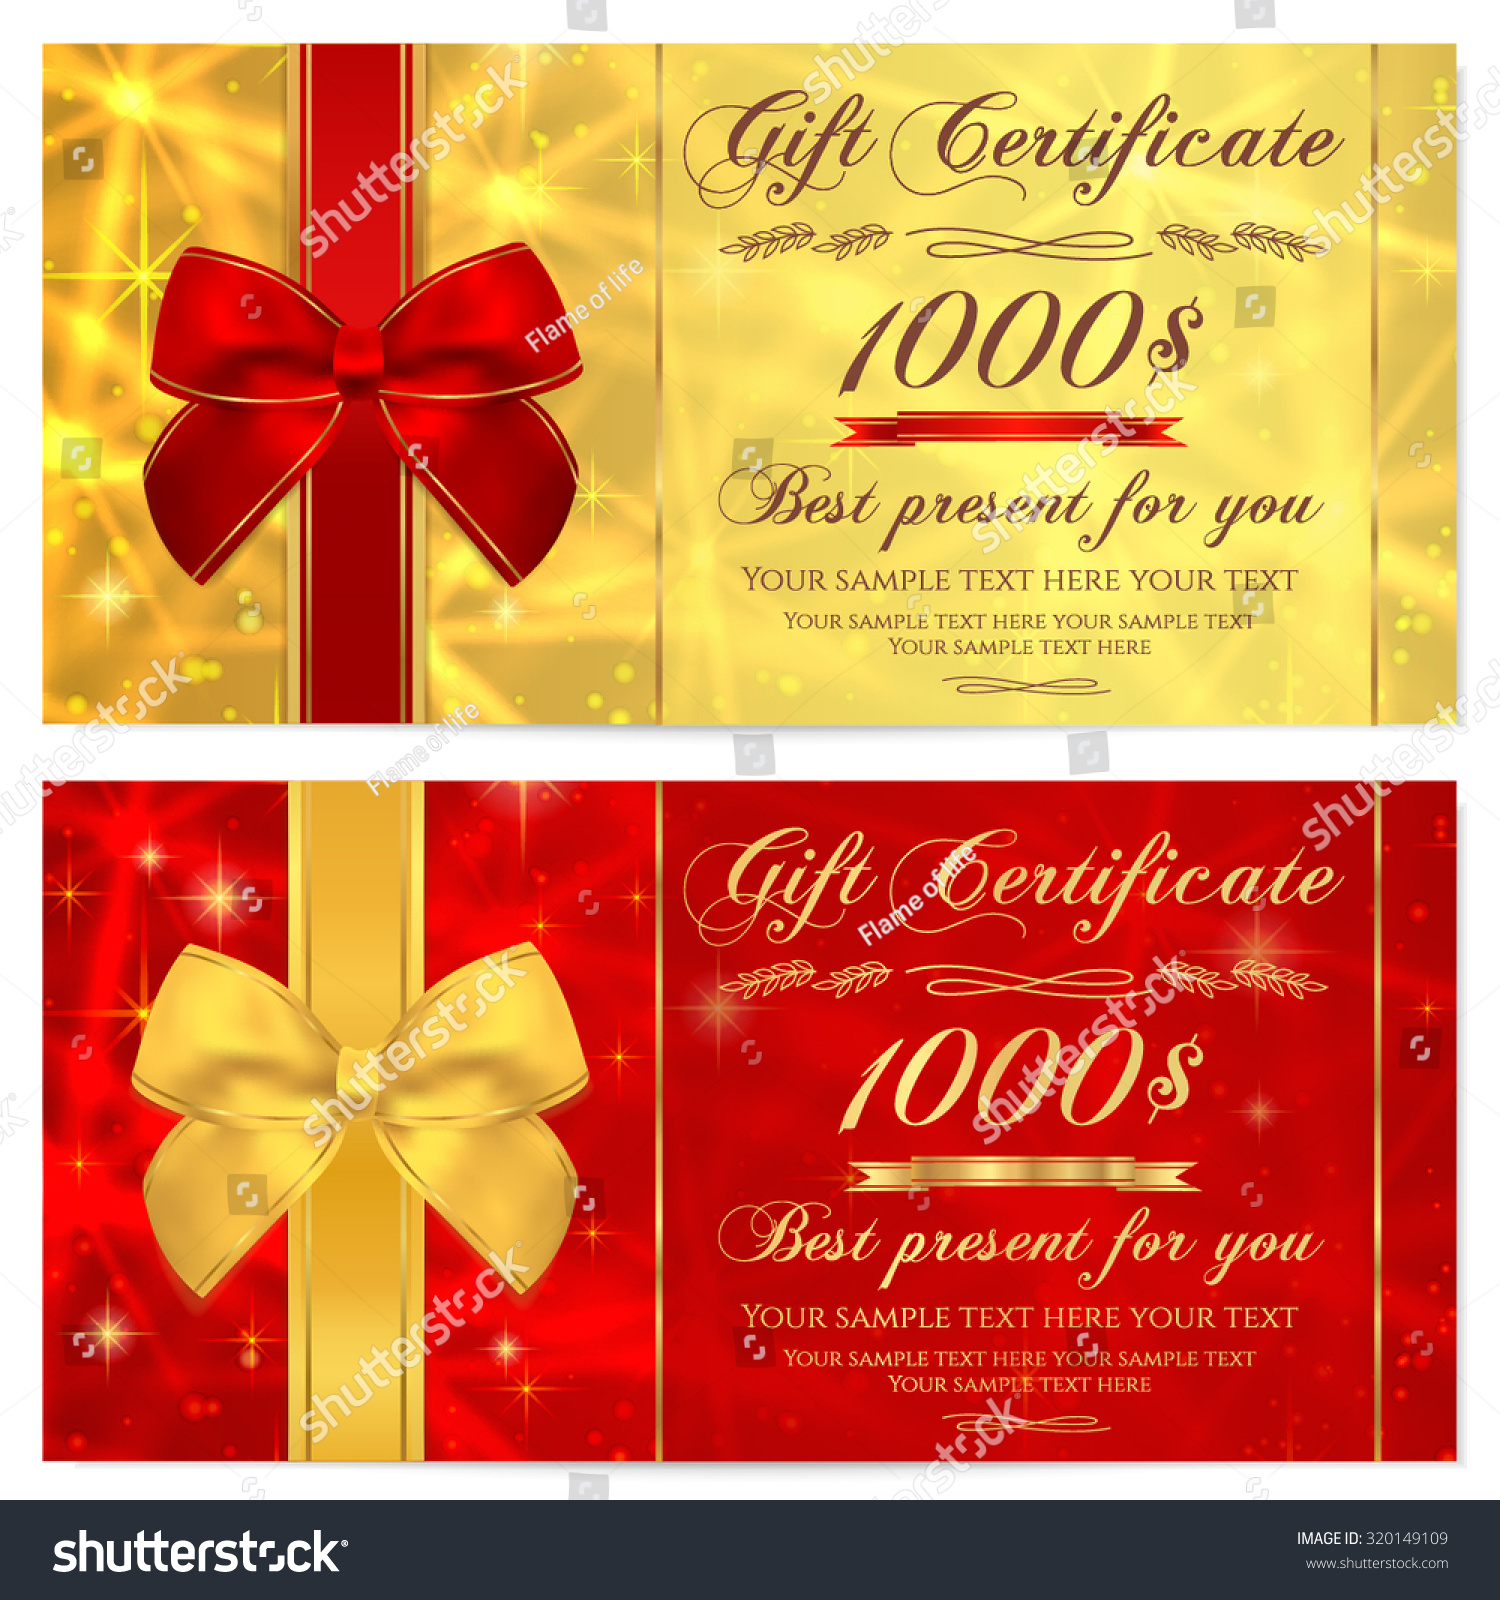 gift certificate voucher coupon invitation gift stock vector gift certificate voucher coupon invitation or gift card template sparkling twinkling